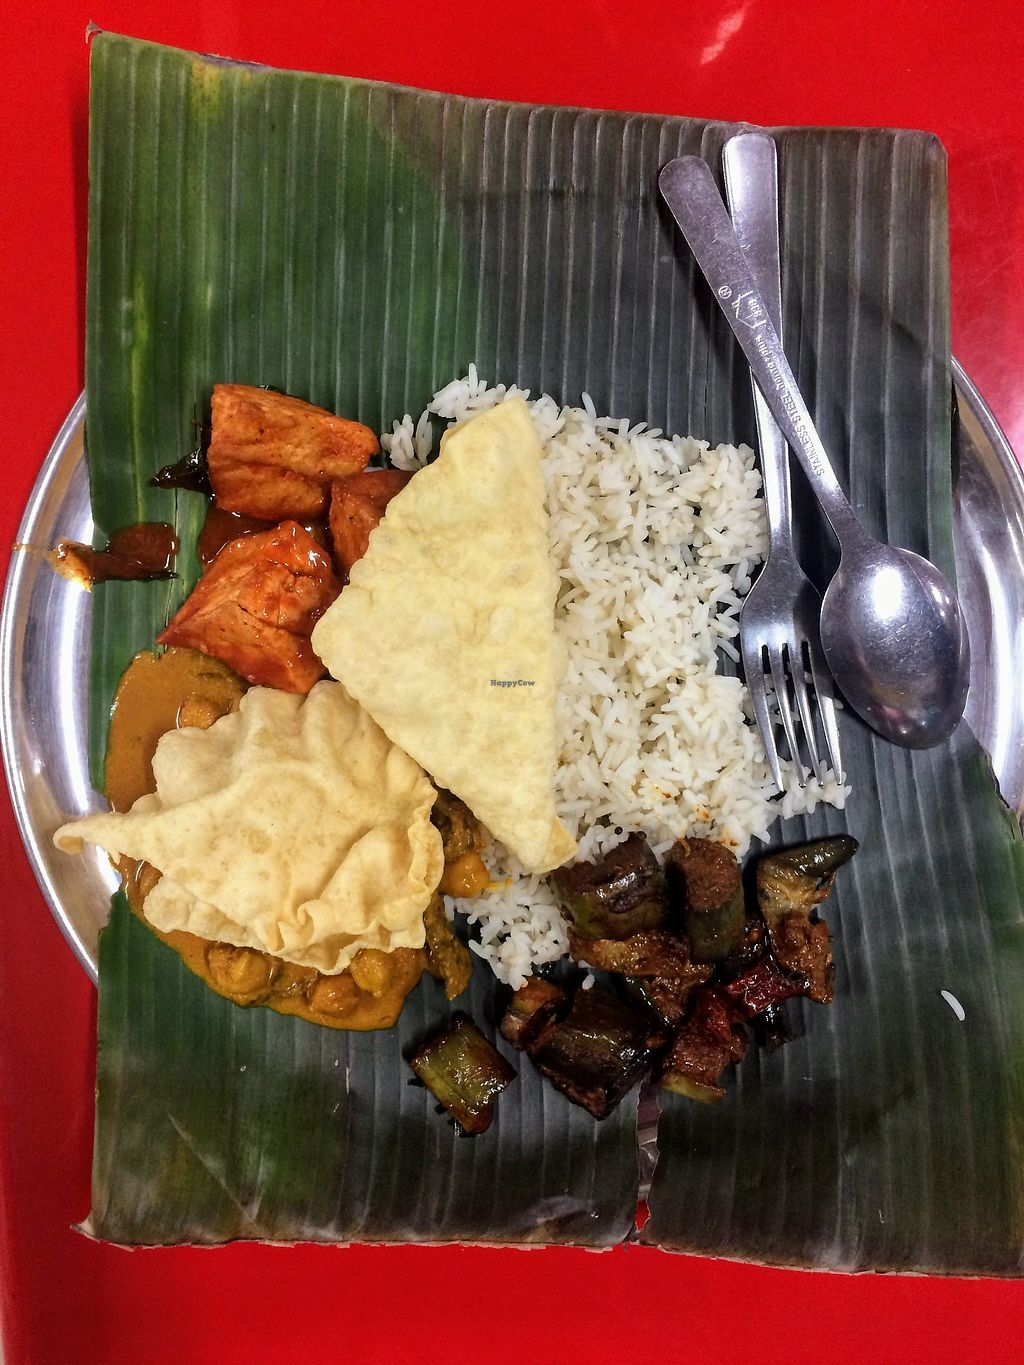 """Photo of Santhi Food Court  by <a href=""""/members/profile/LaurenceMontreuil"""">LaurenceMontreuil</a> <br/>Banana leaf vegetarian set <br/> February 20, 2018  - <a href='/contact/abuse/image/112509/361671'>Report</a>"""